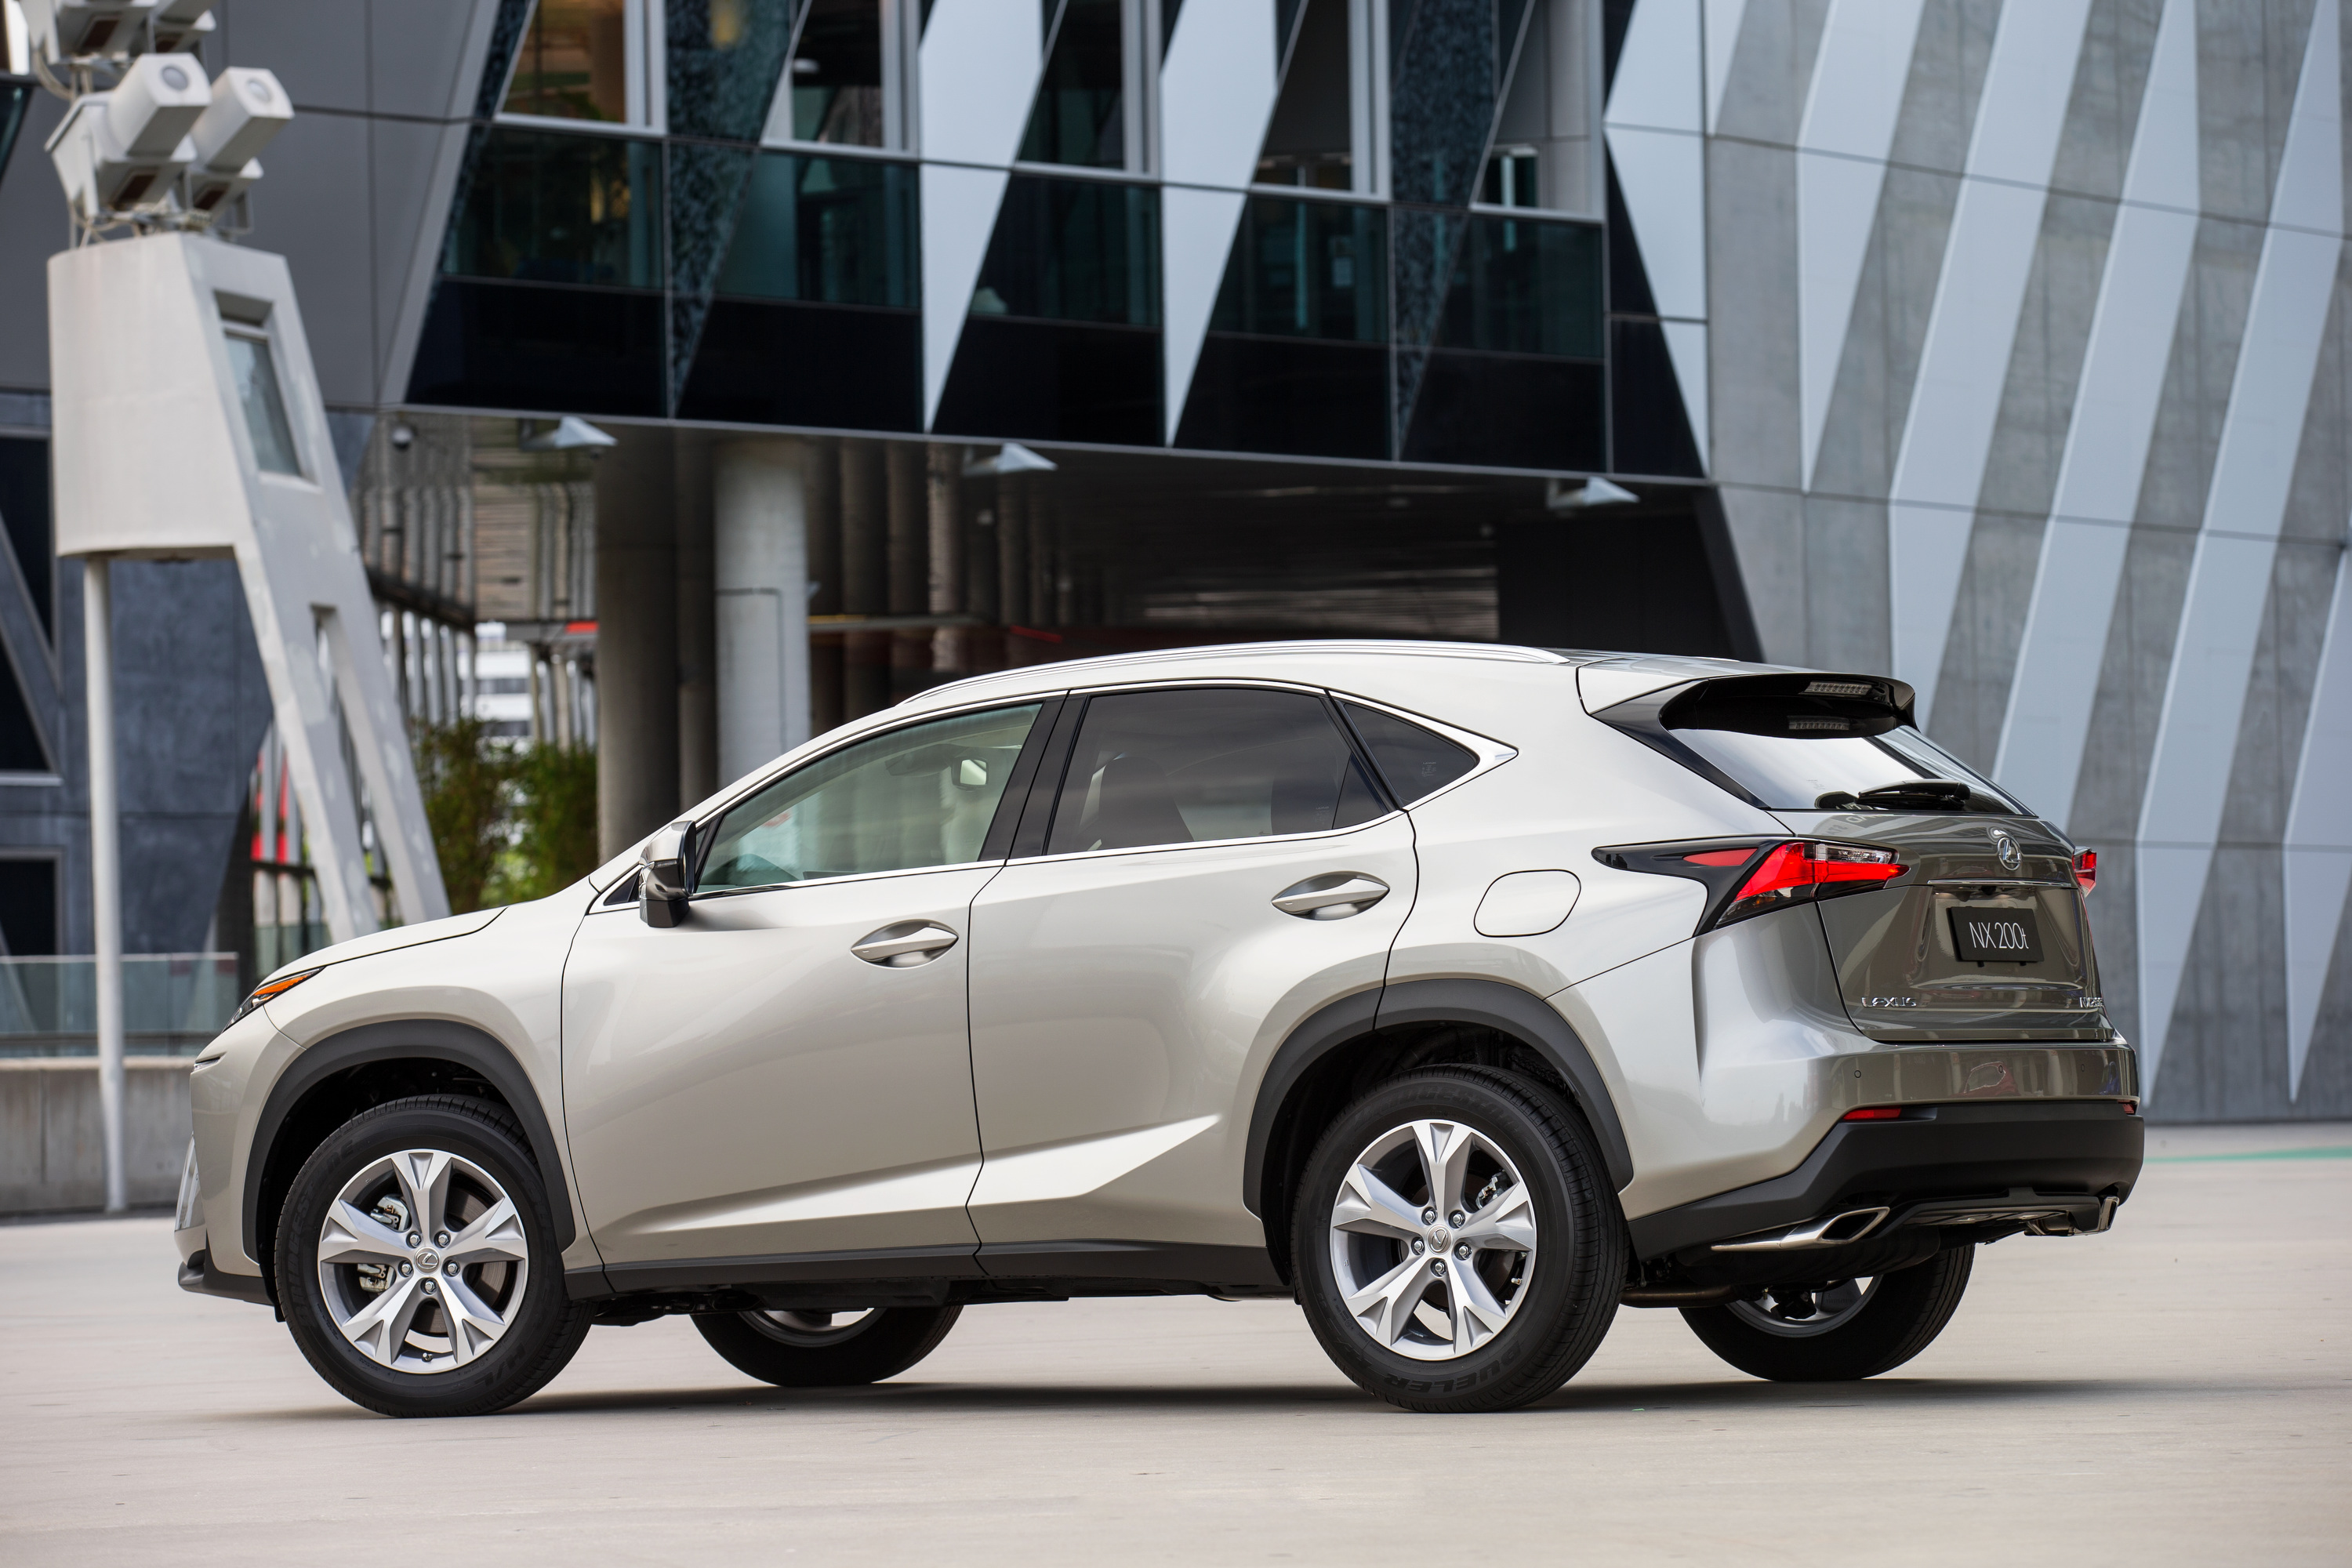 2015 lexus nx200t review caradvice. Black Bedroom Furniture Sets. Home Design Ideas